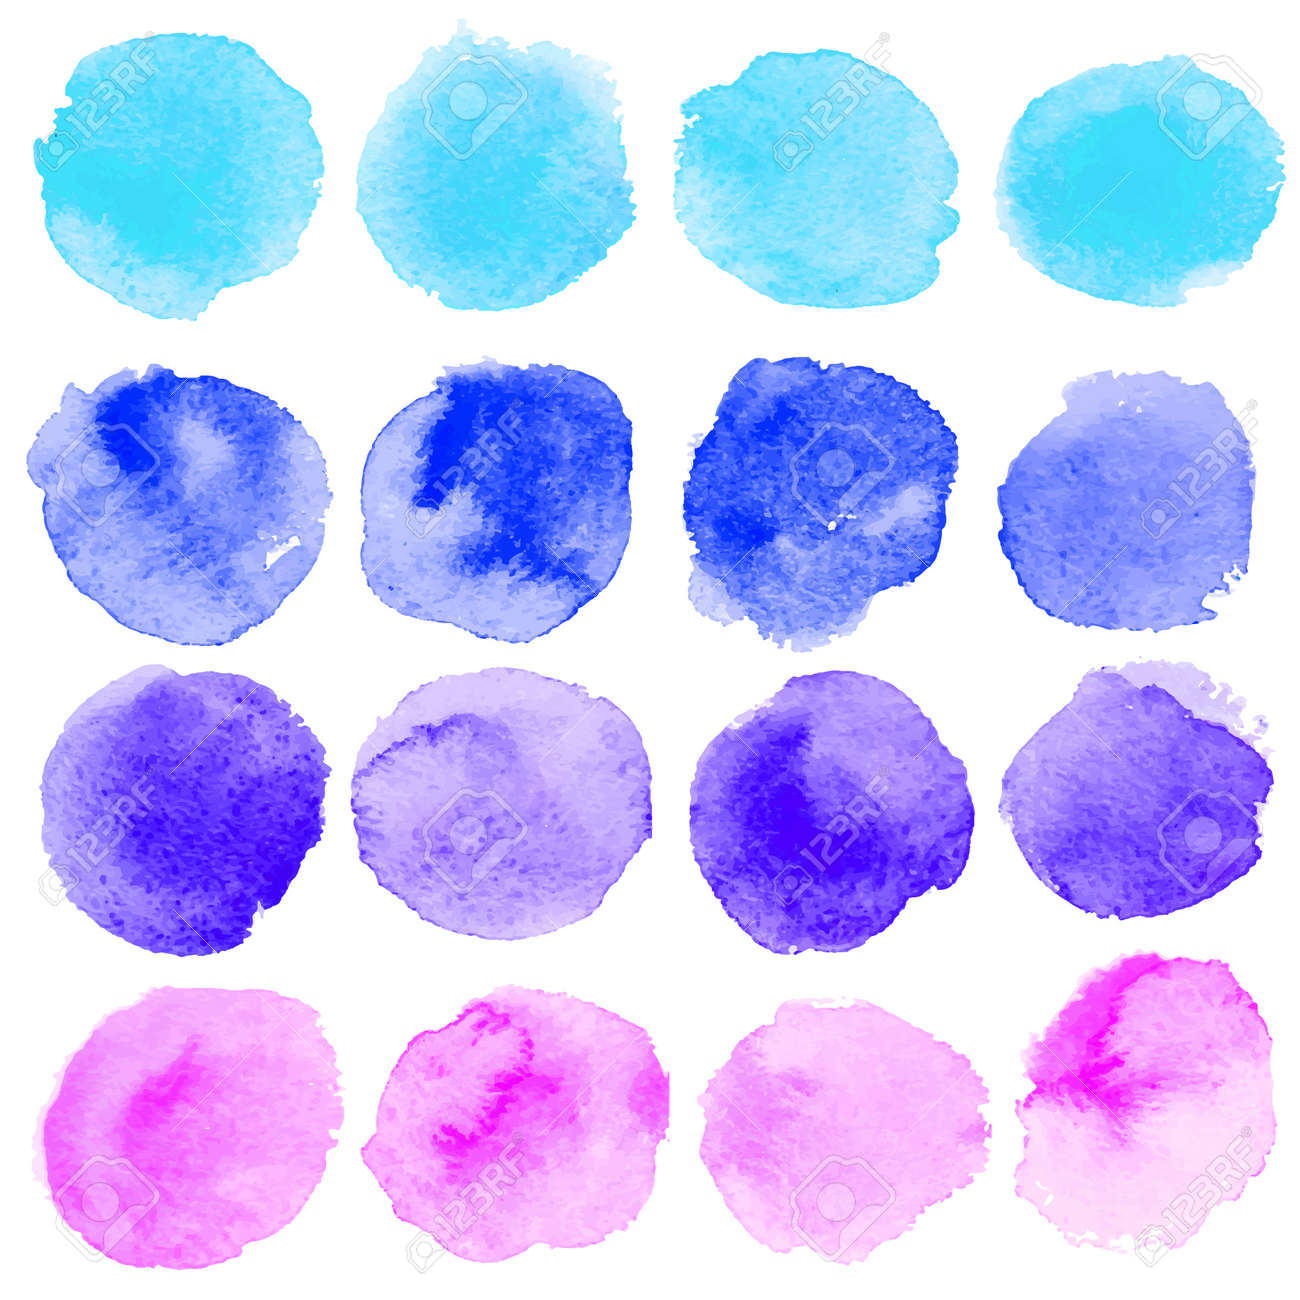 Set of watercolor blobs, isolated on white background. Vector illustration texture - 167329608